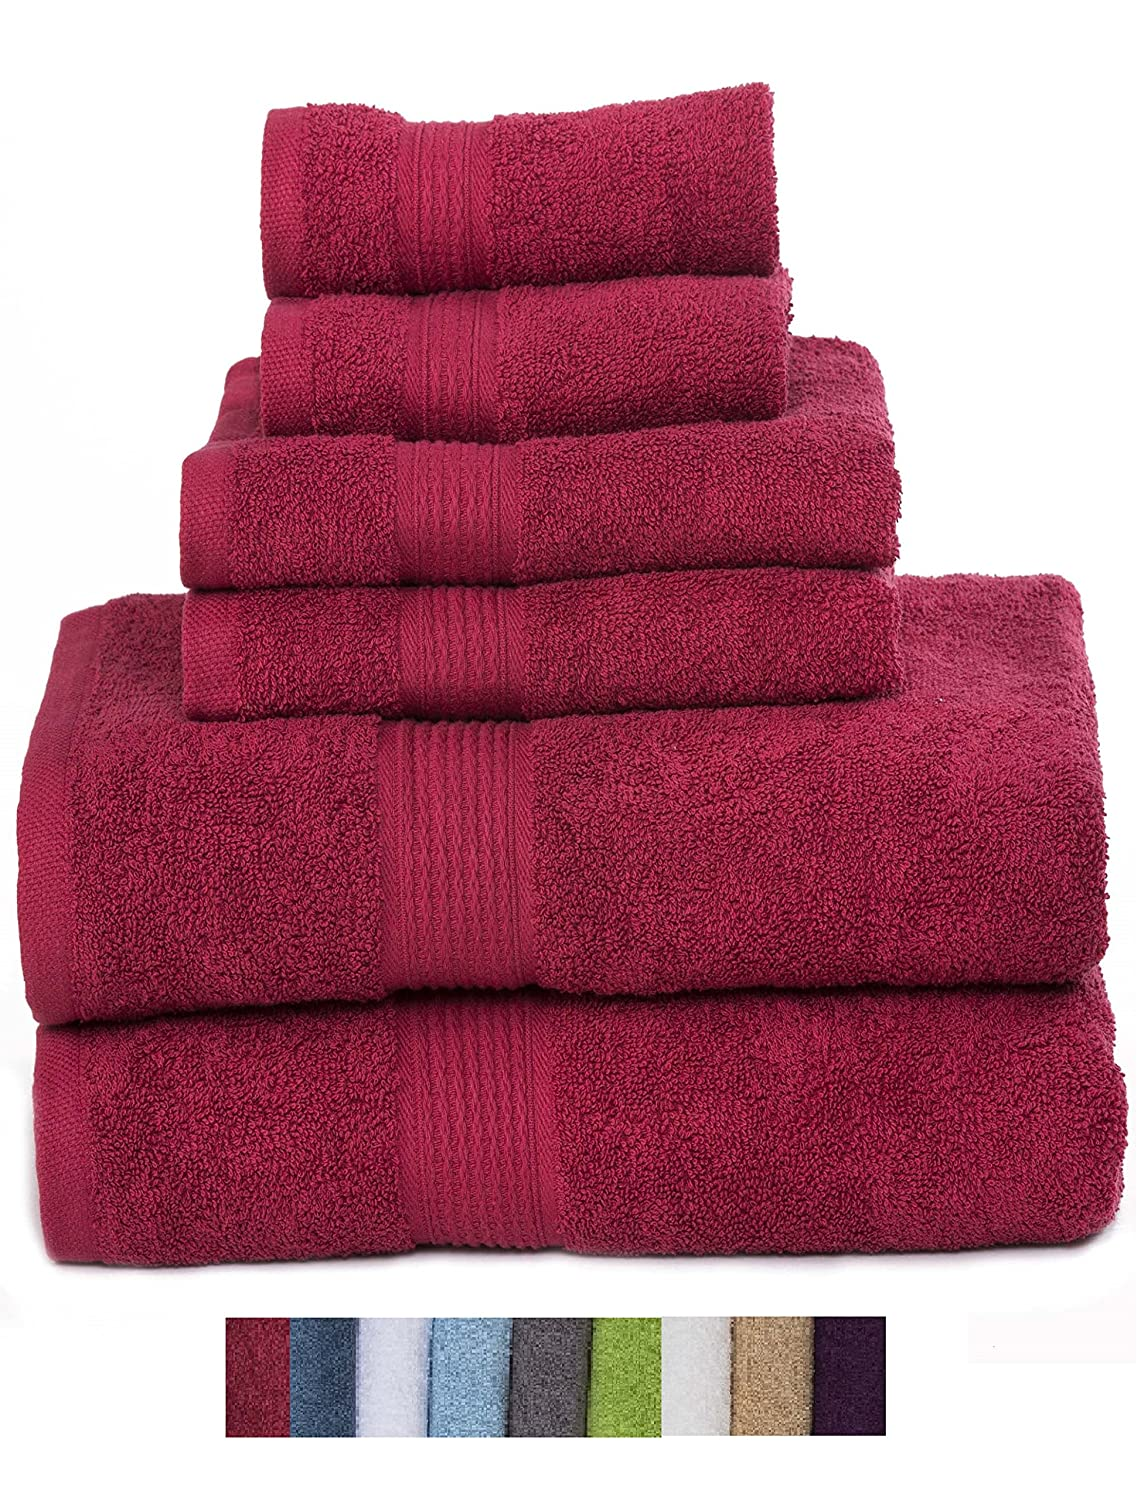 Hydro Basics Fade-Resistant 6-Piece Cotton Towel Set, 100% Cotton terry bathroom set, Soft, Absorbent, Machine Washable, Quick Dry (white) Casa Lino